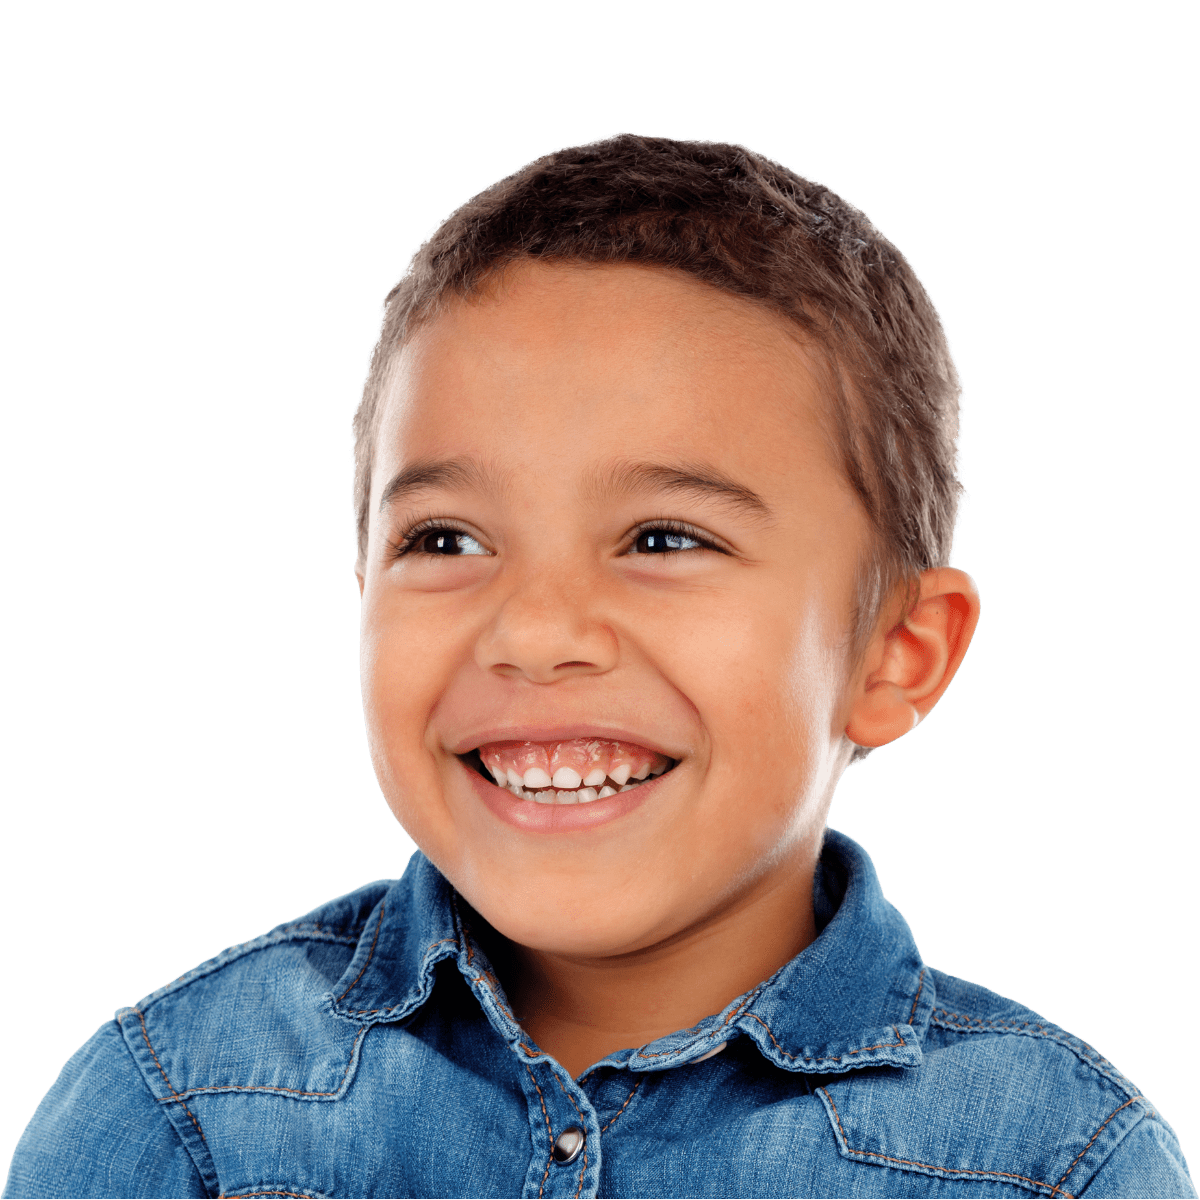 Child Receiving ABA Therapy at Early Autism Services